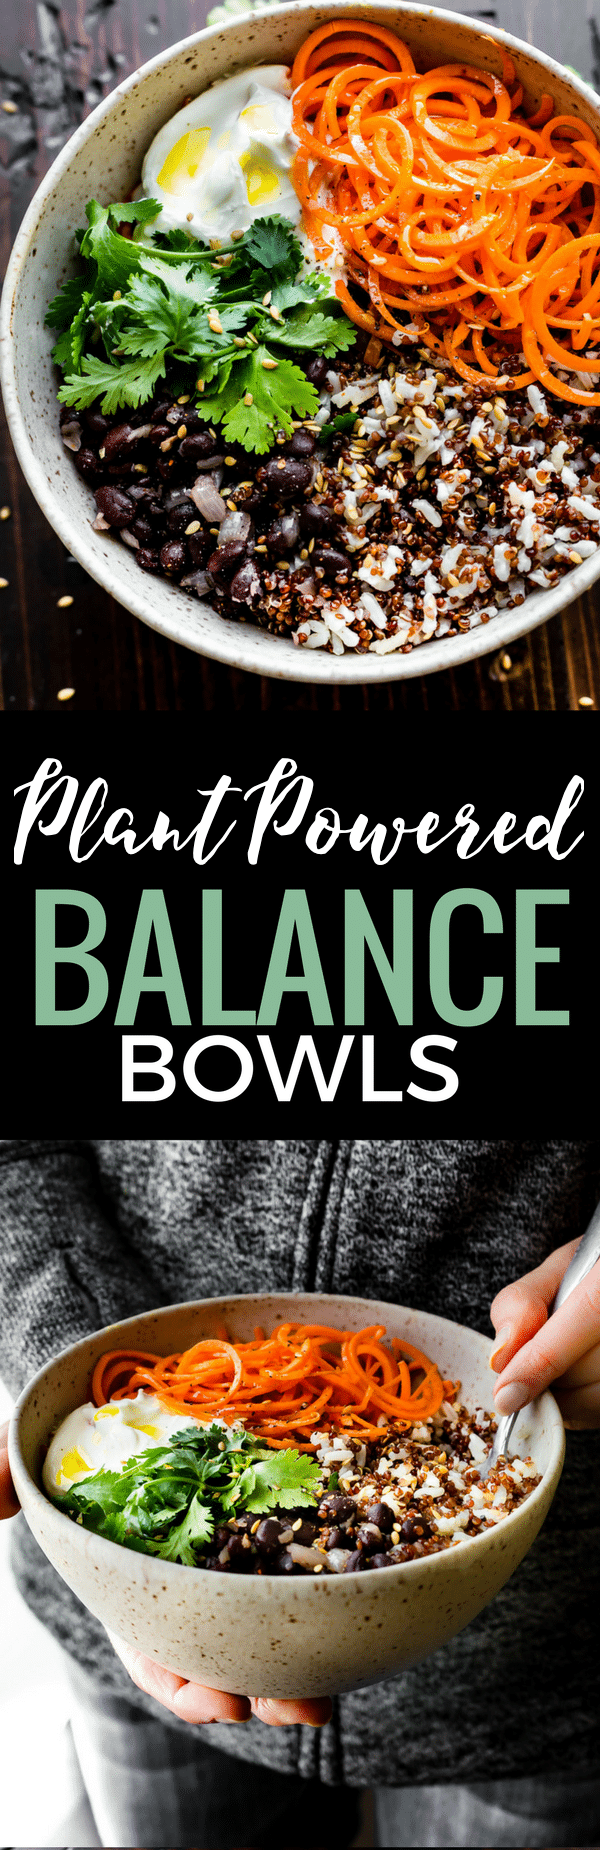 "Gluten free Balance Bowls! No matter what you call these plant powered ""balance bowls""— Power bowls, buddha bowls, Macro Bowls, Quinoa Bowls, etc. They truly are easy to make! A healthy meal prep bowl packed full of balanced macronutrients, vitamins, minerals, and more! www.cottercrunch.com"